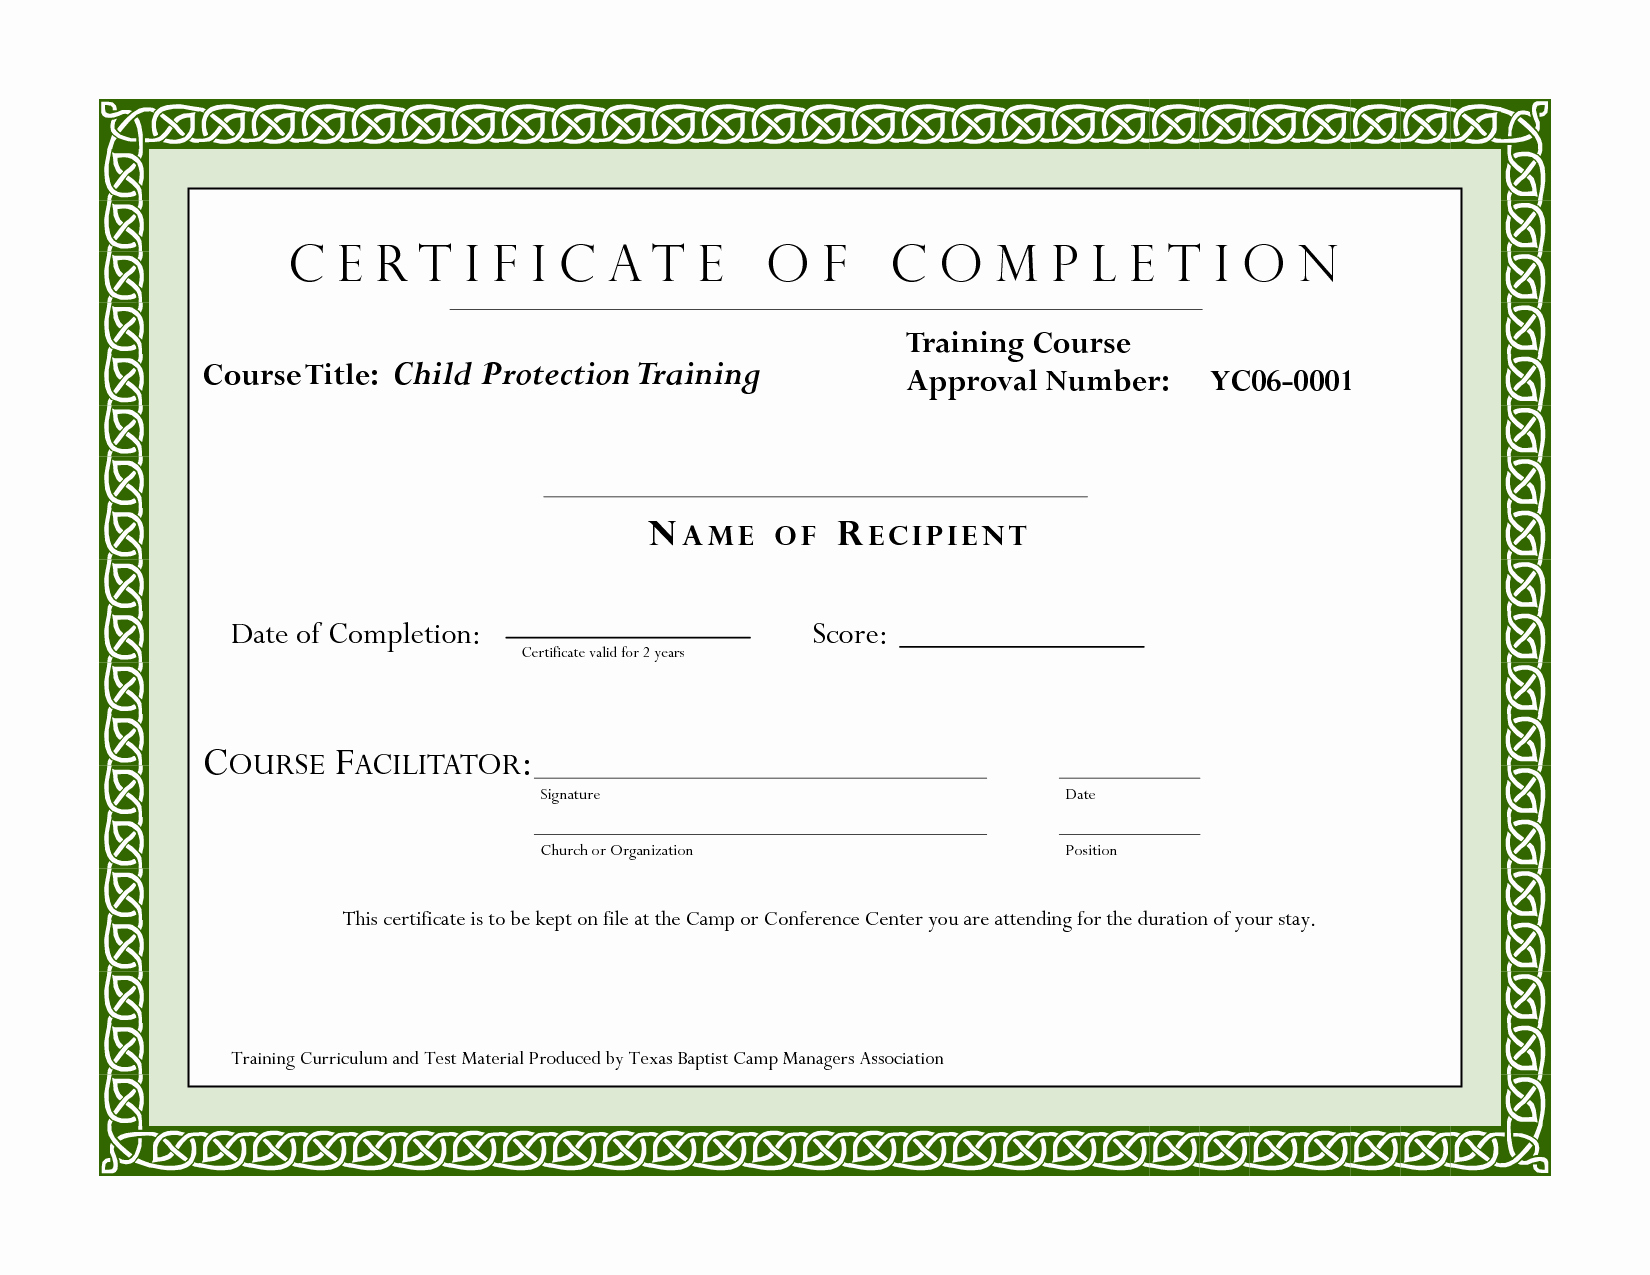 Certificates Of Completion Template Word Inspirational Course Pletion Certificate Template